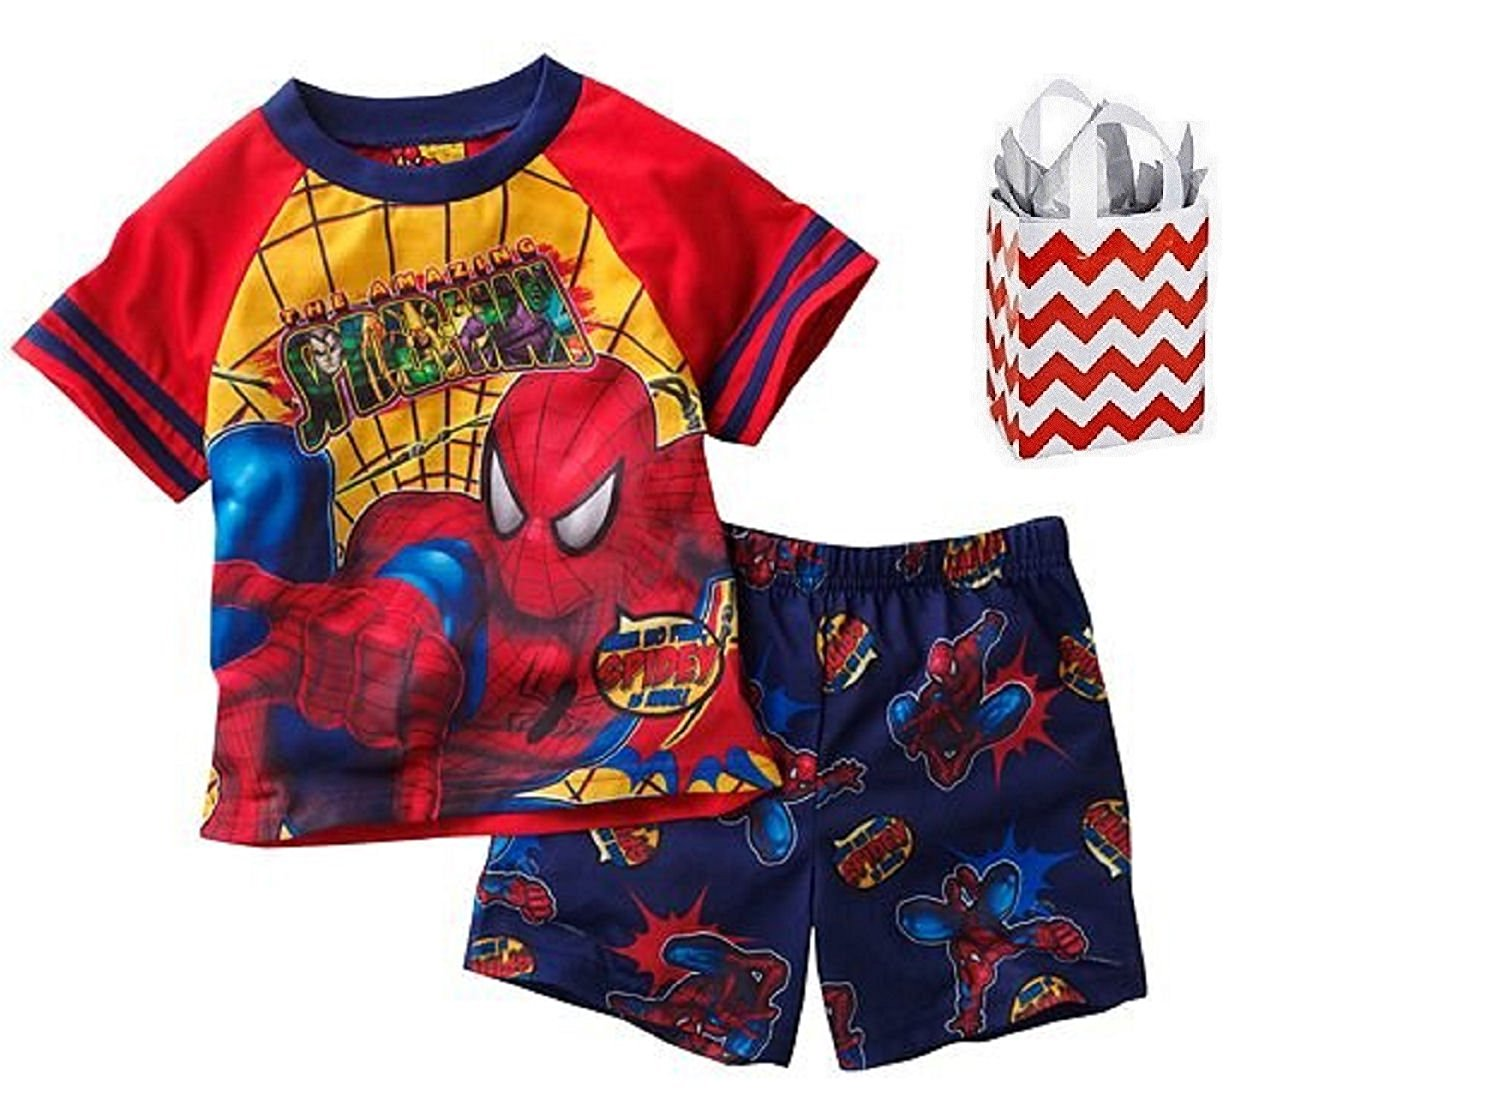 Marvel Spider-Man Little Boys' Pajama Set & Bag - Multi-pack